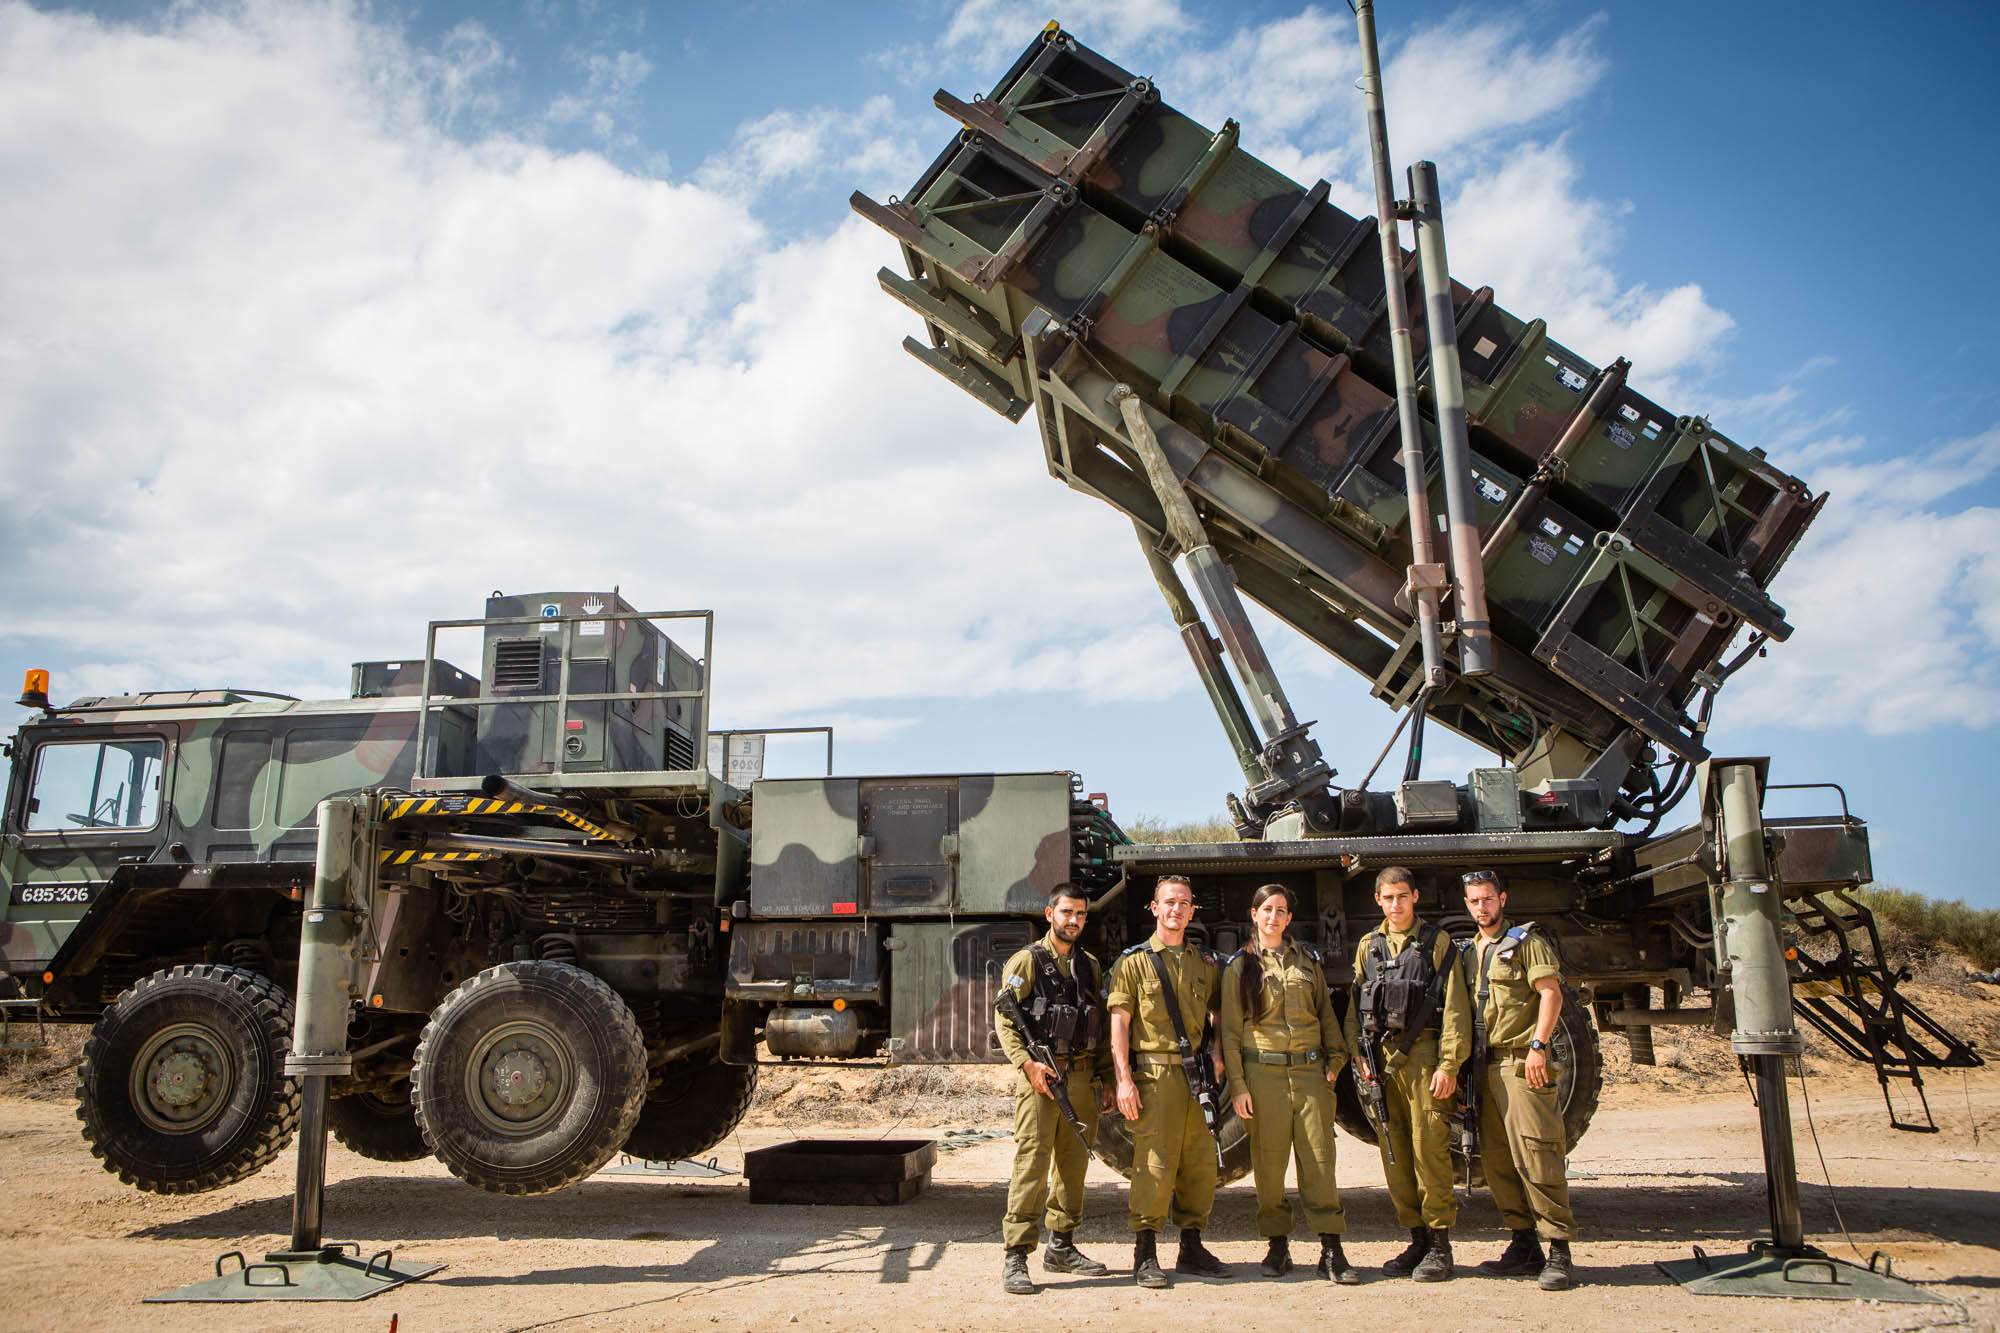 Israel Used Patriot Missile To Down Reconnaissance Drone At Border With Syria - Reports